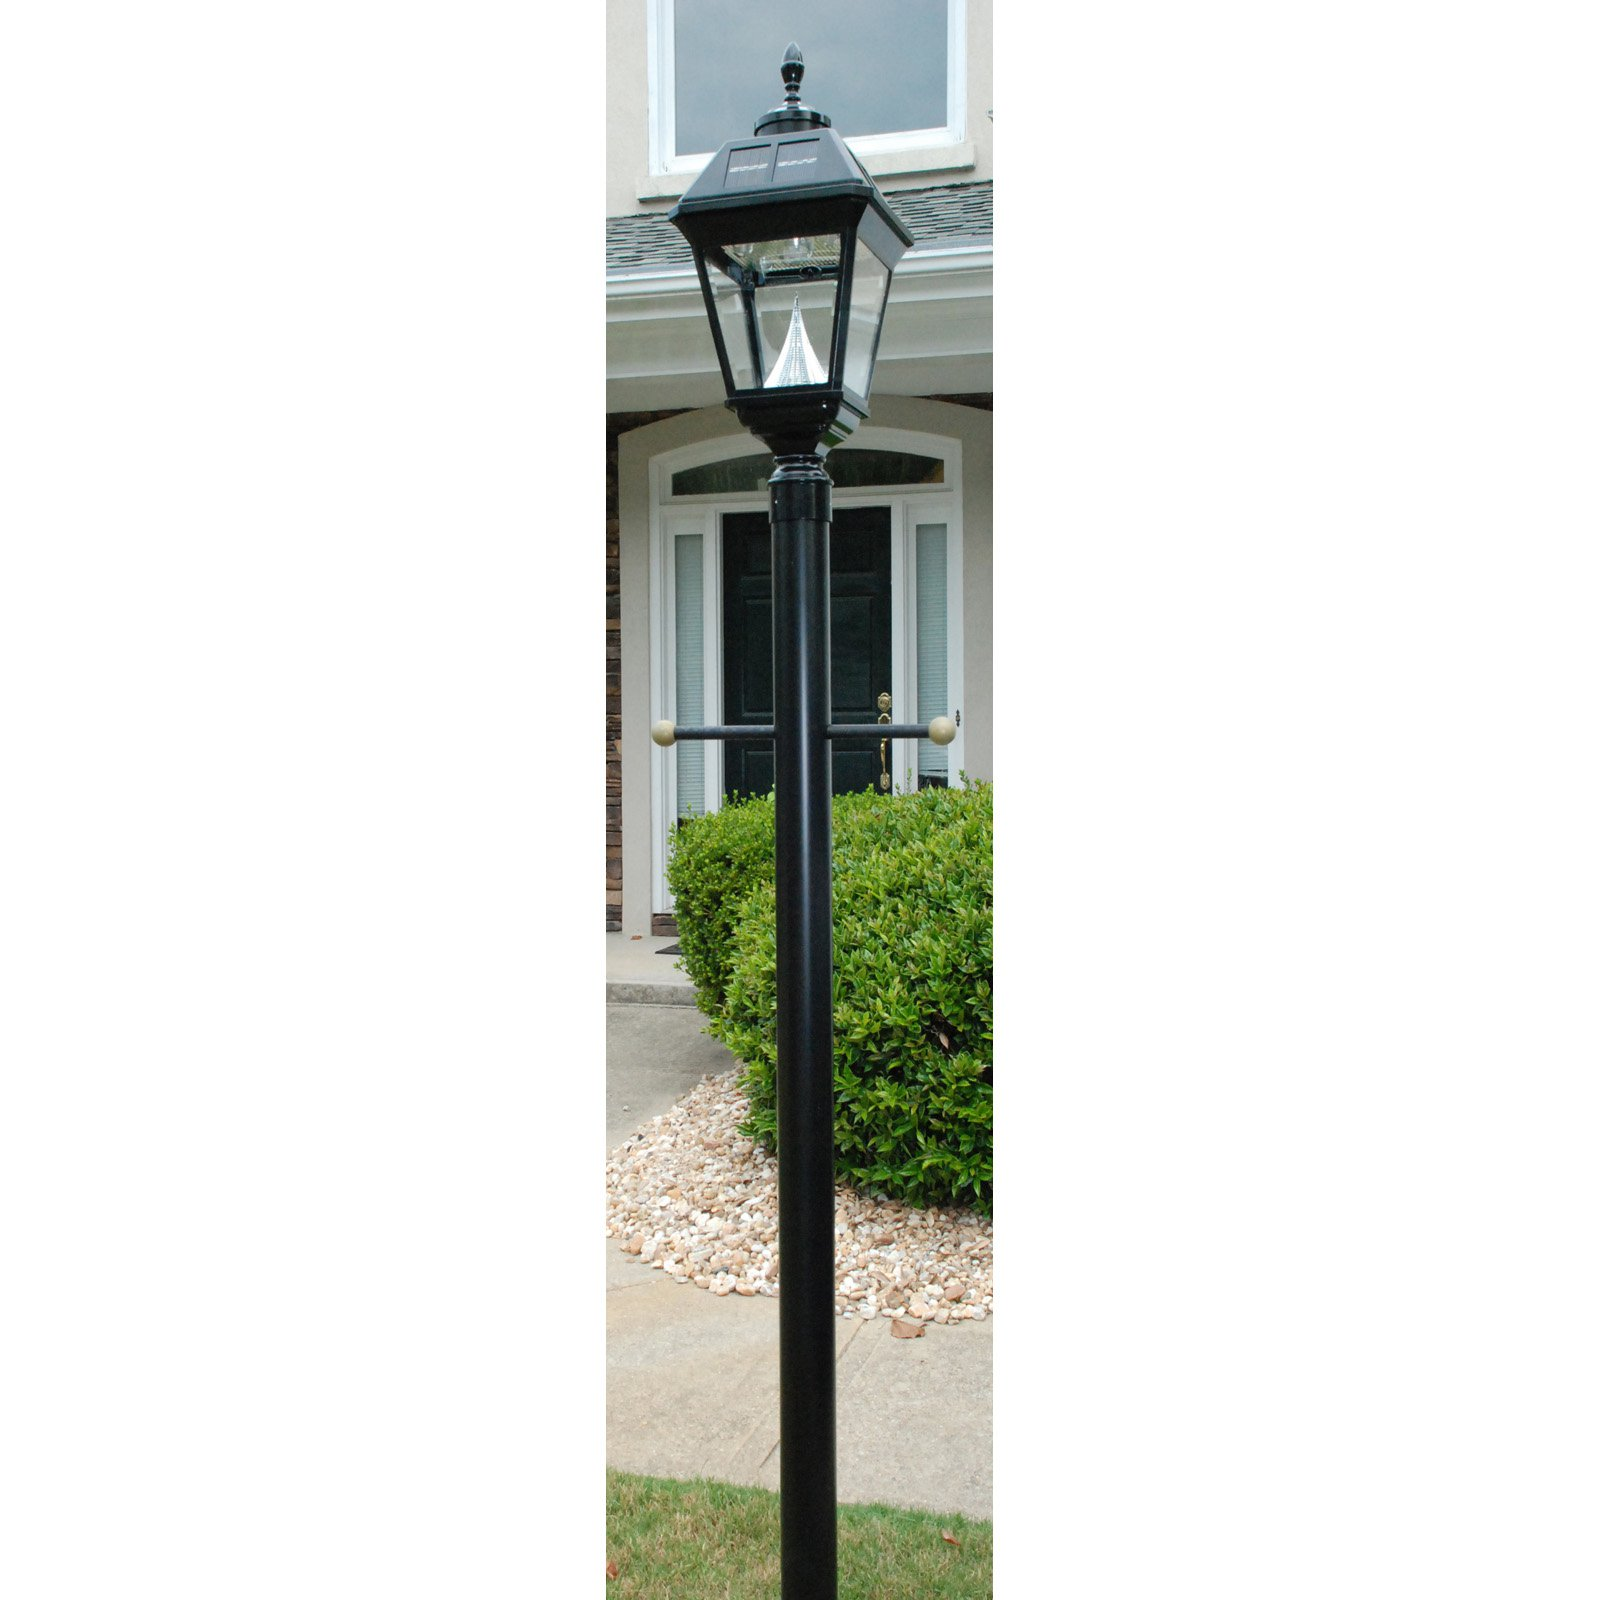 Gama Sonic Imperial Light Pole